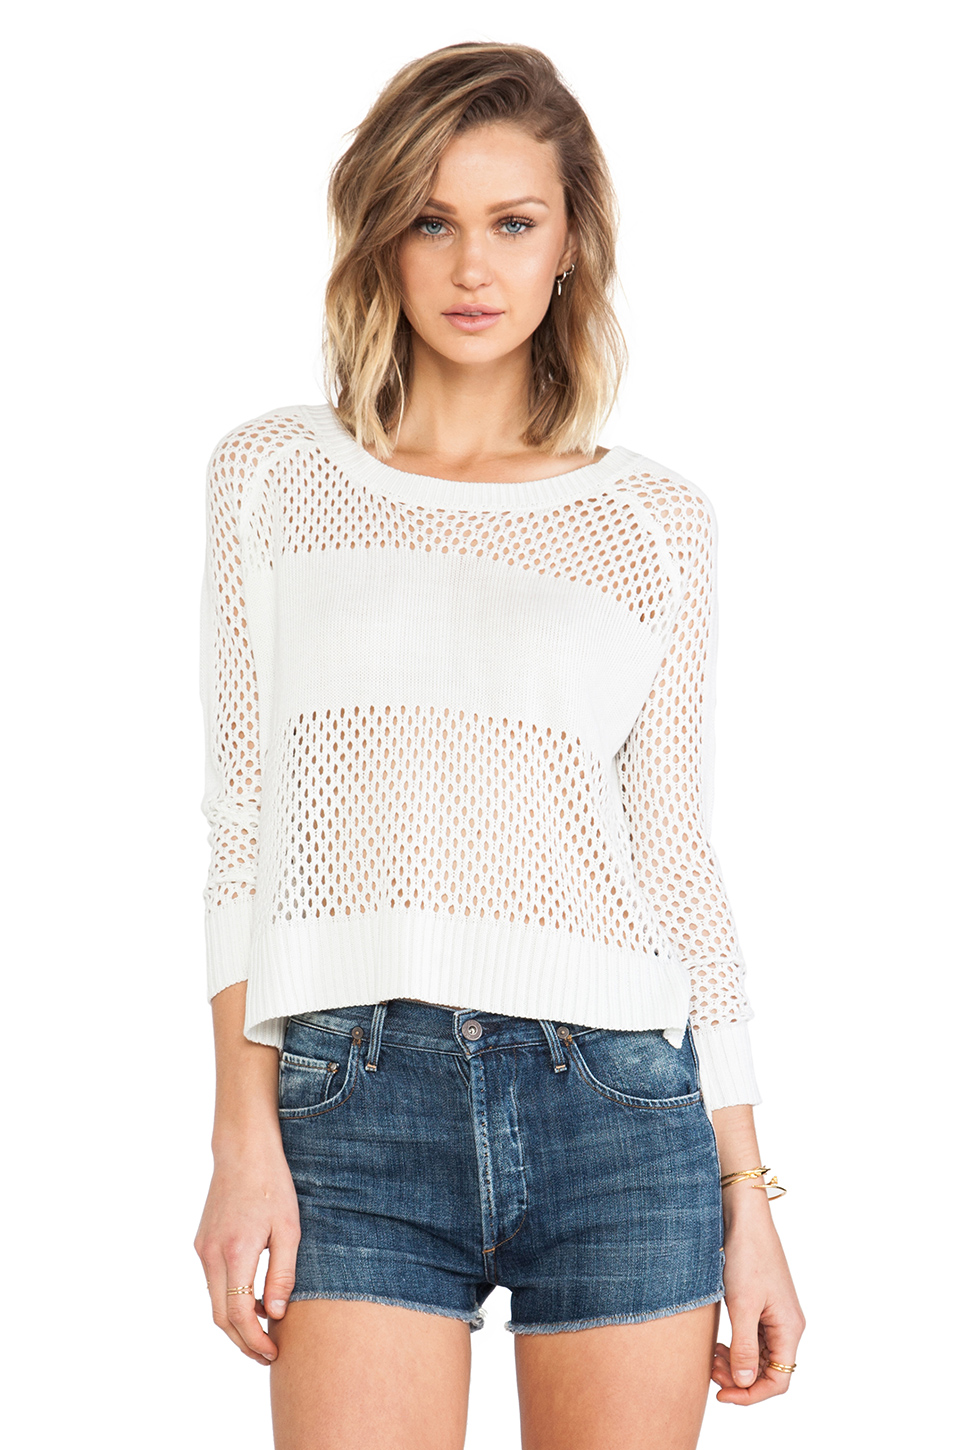 heartLoom Sonia Sweater in Eggshell from REVOLVEclothing.com